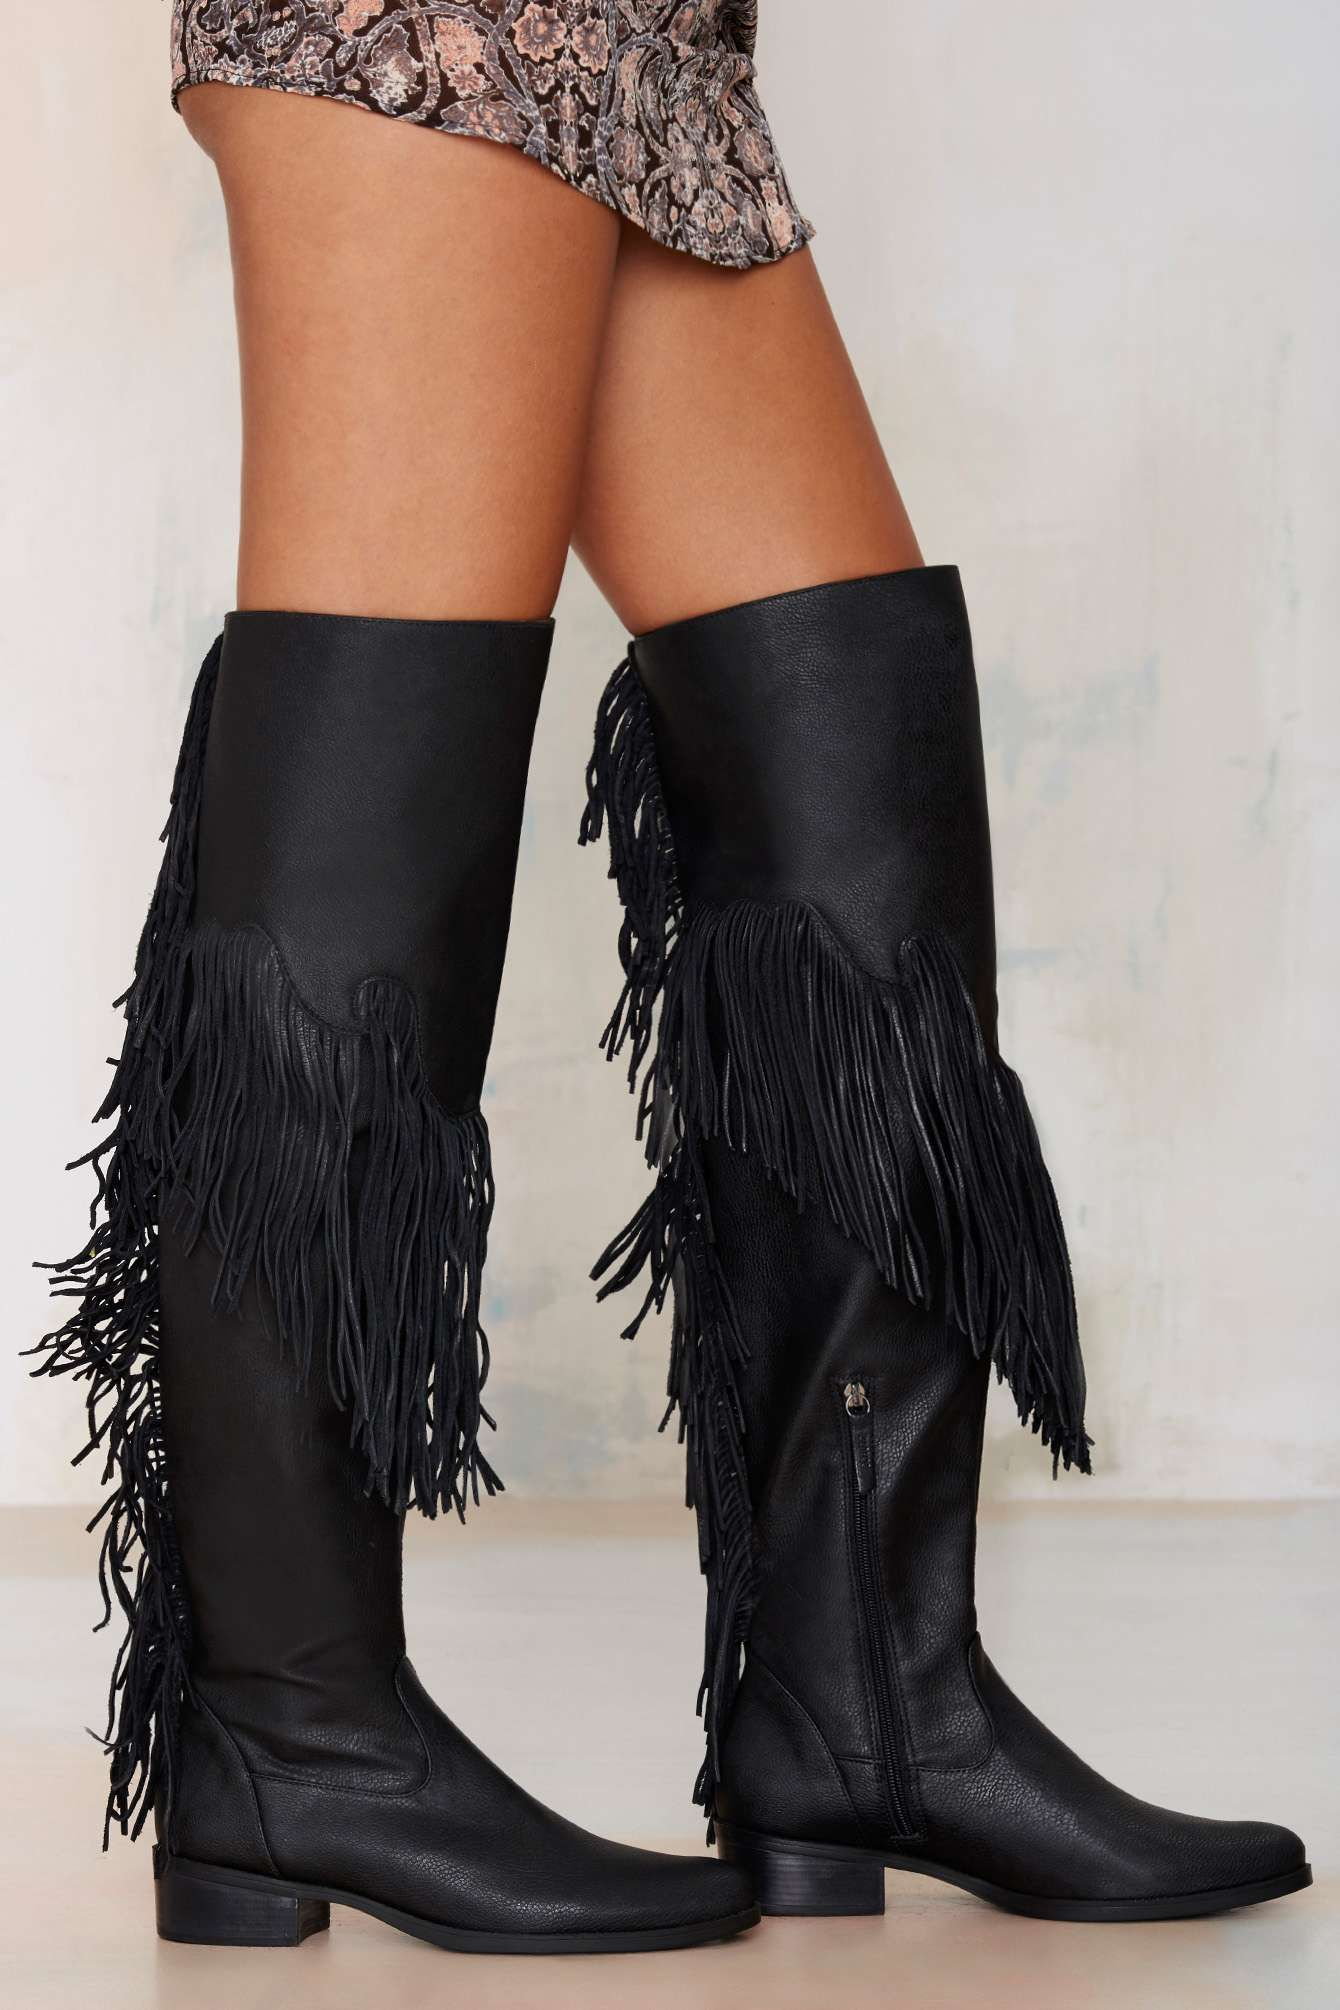 1000  images about Over the Knee Boots on Pinterest | Thigh highs ...